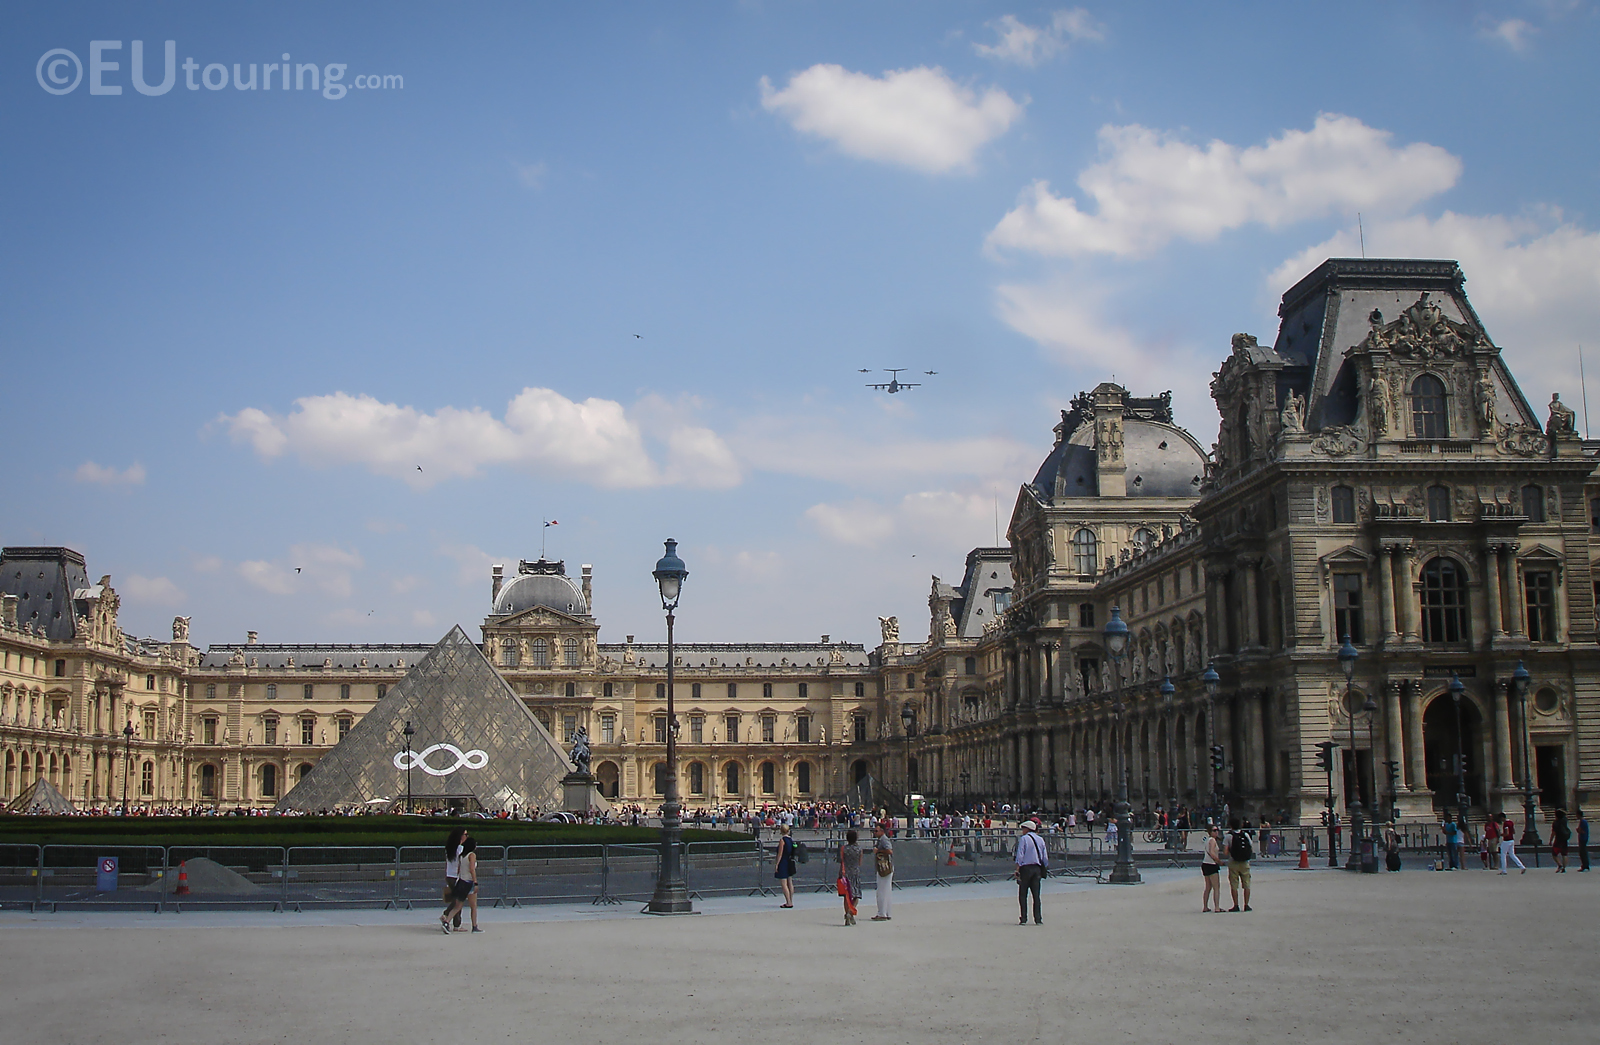 The Louvre and a group of planes